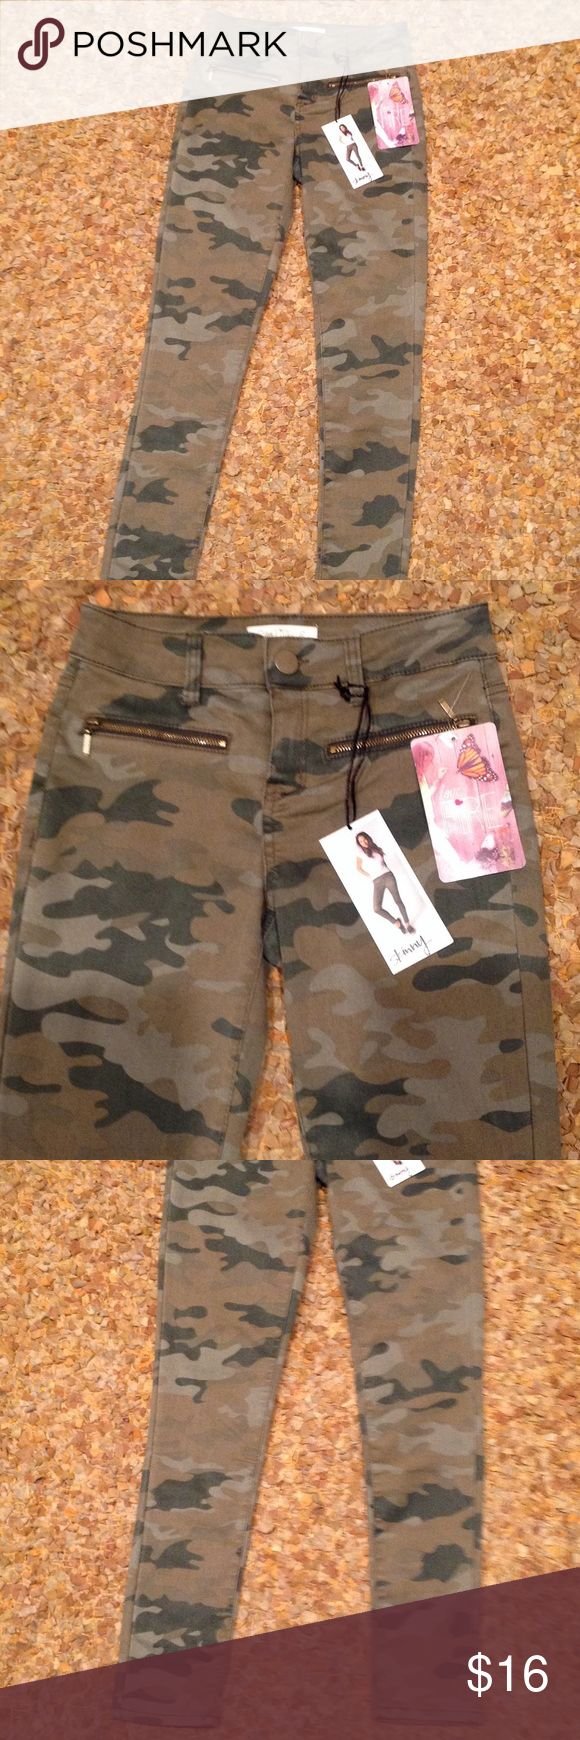 New Love fire junior camouflage skinny jeans Sz 1 Brand new with tag attached... Sz 1... Juniors...Camouflage print... Zippers at front sides... Skinny... Staple piece Love fire Jeans Skinny